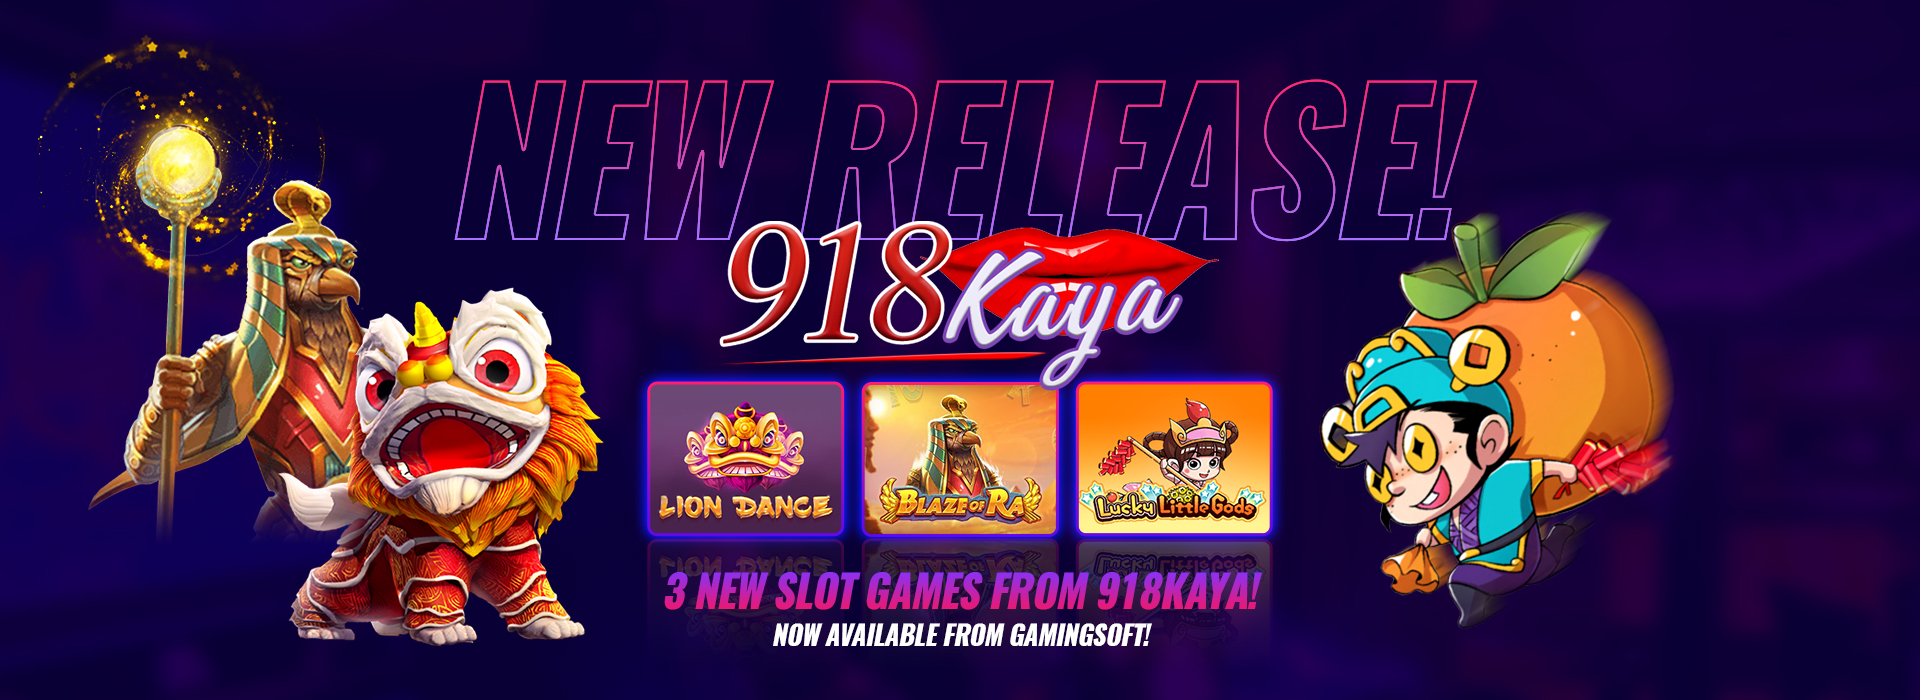 Check out the New Slot Games Provided by 918Kaya - GamingSoft